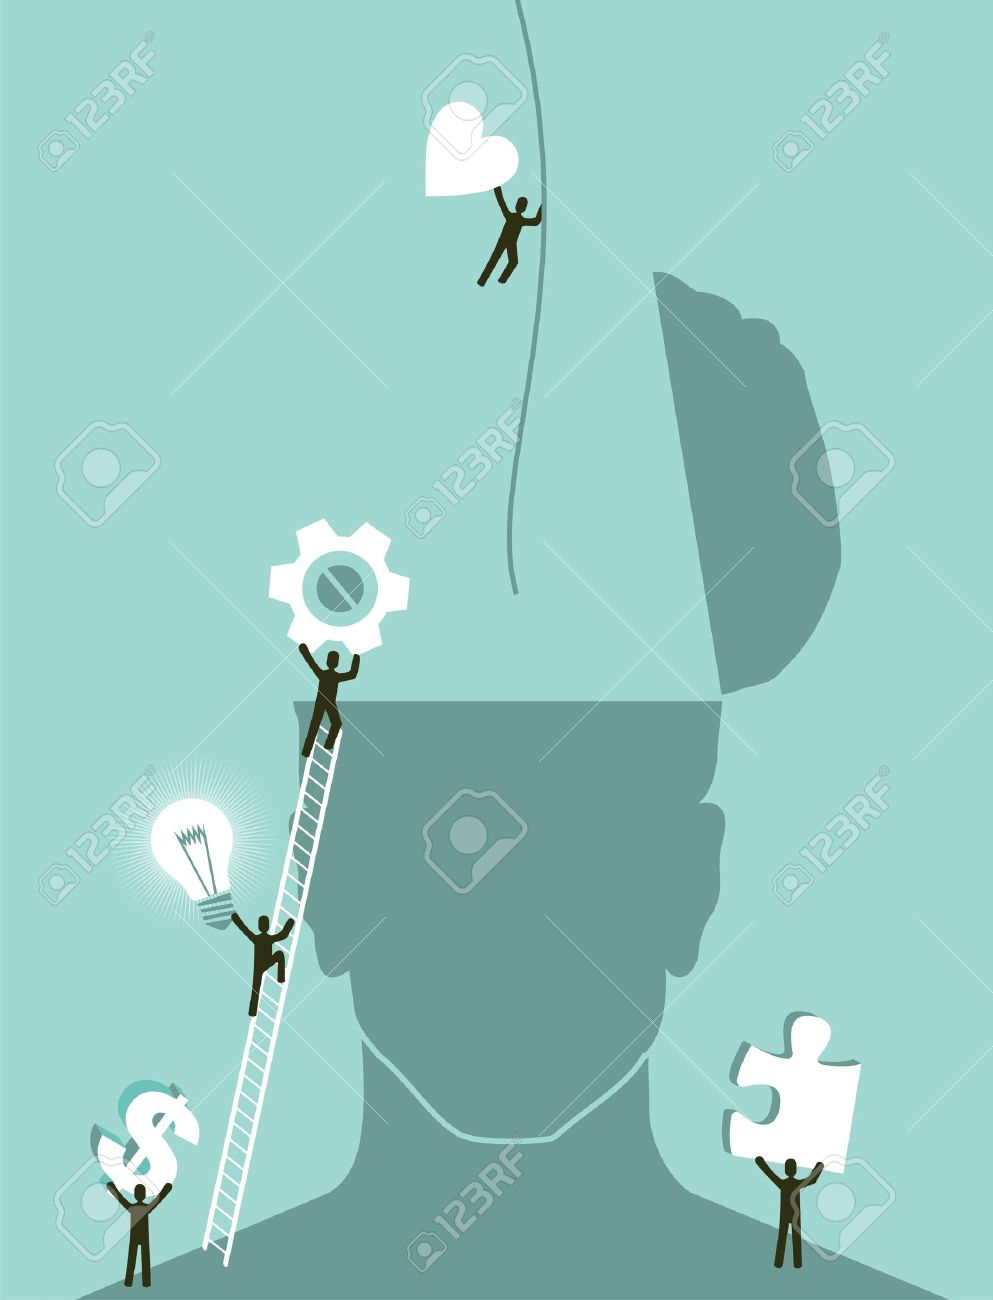 Business innovation brainstorming concept illustration  Vector layered for easy manipulation and custom coloring Stock Vector - 16907108